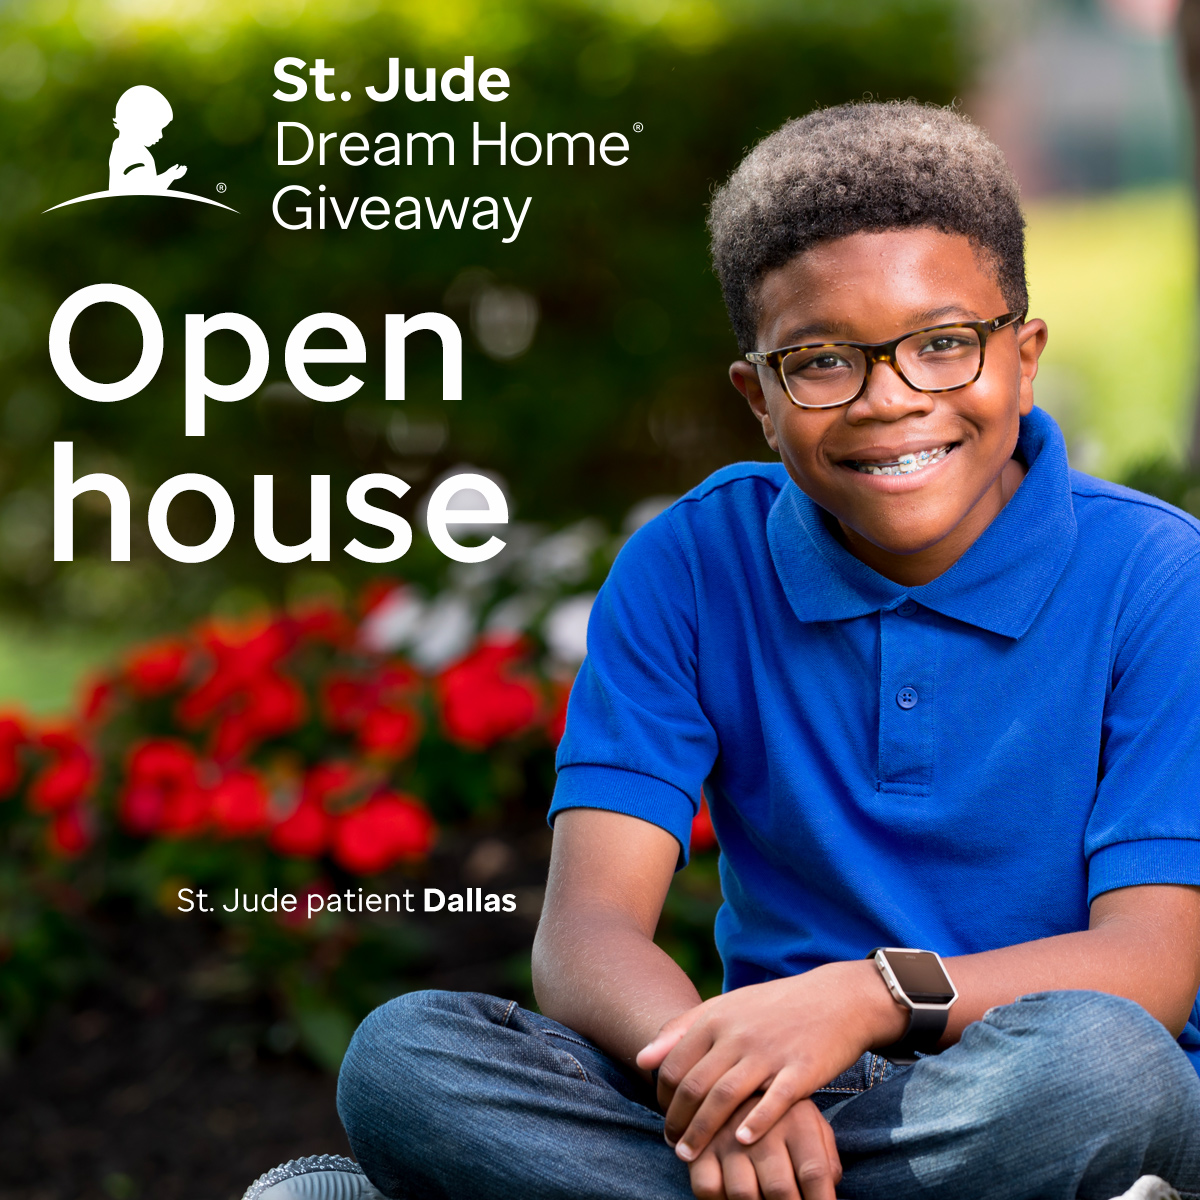 St. Jude Dream Home Giveaway Open House Featuring a St. Jude Dallas Patient